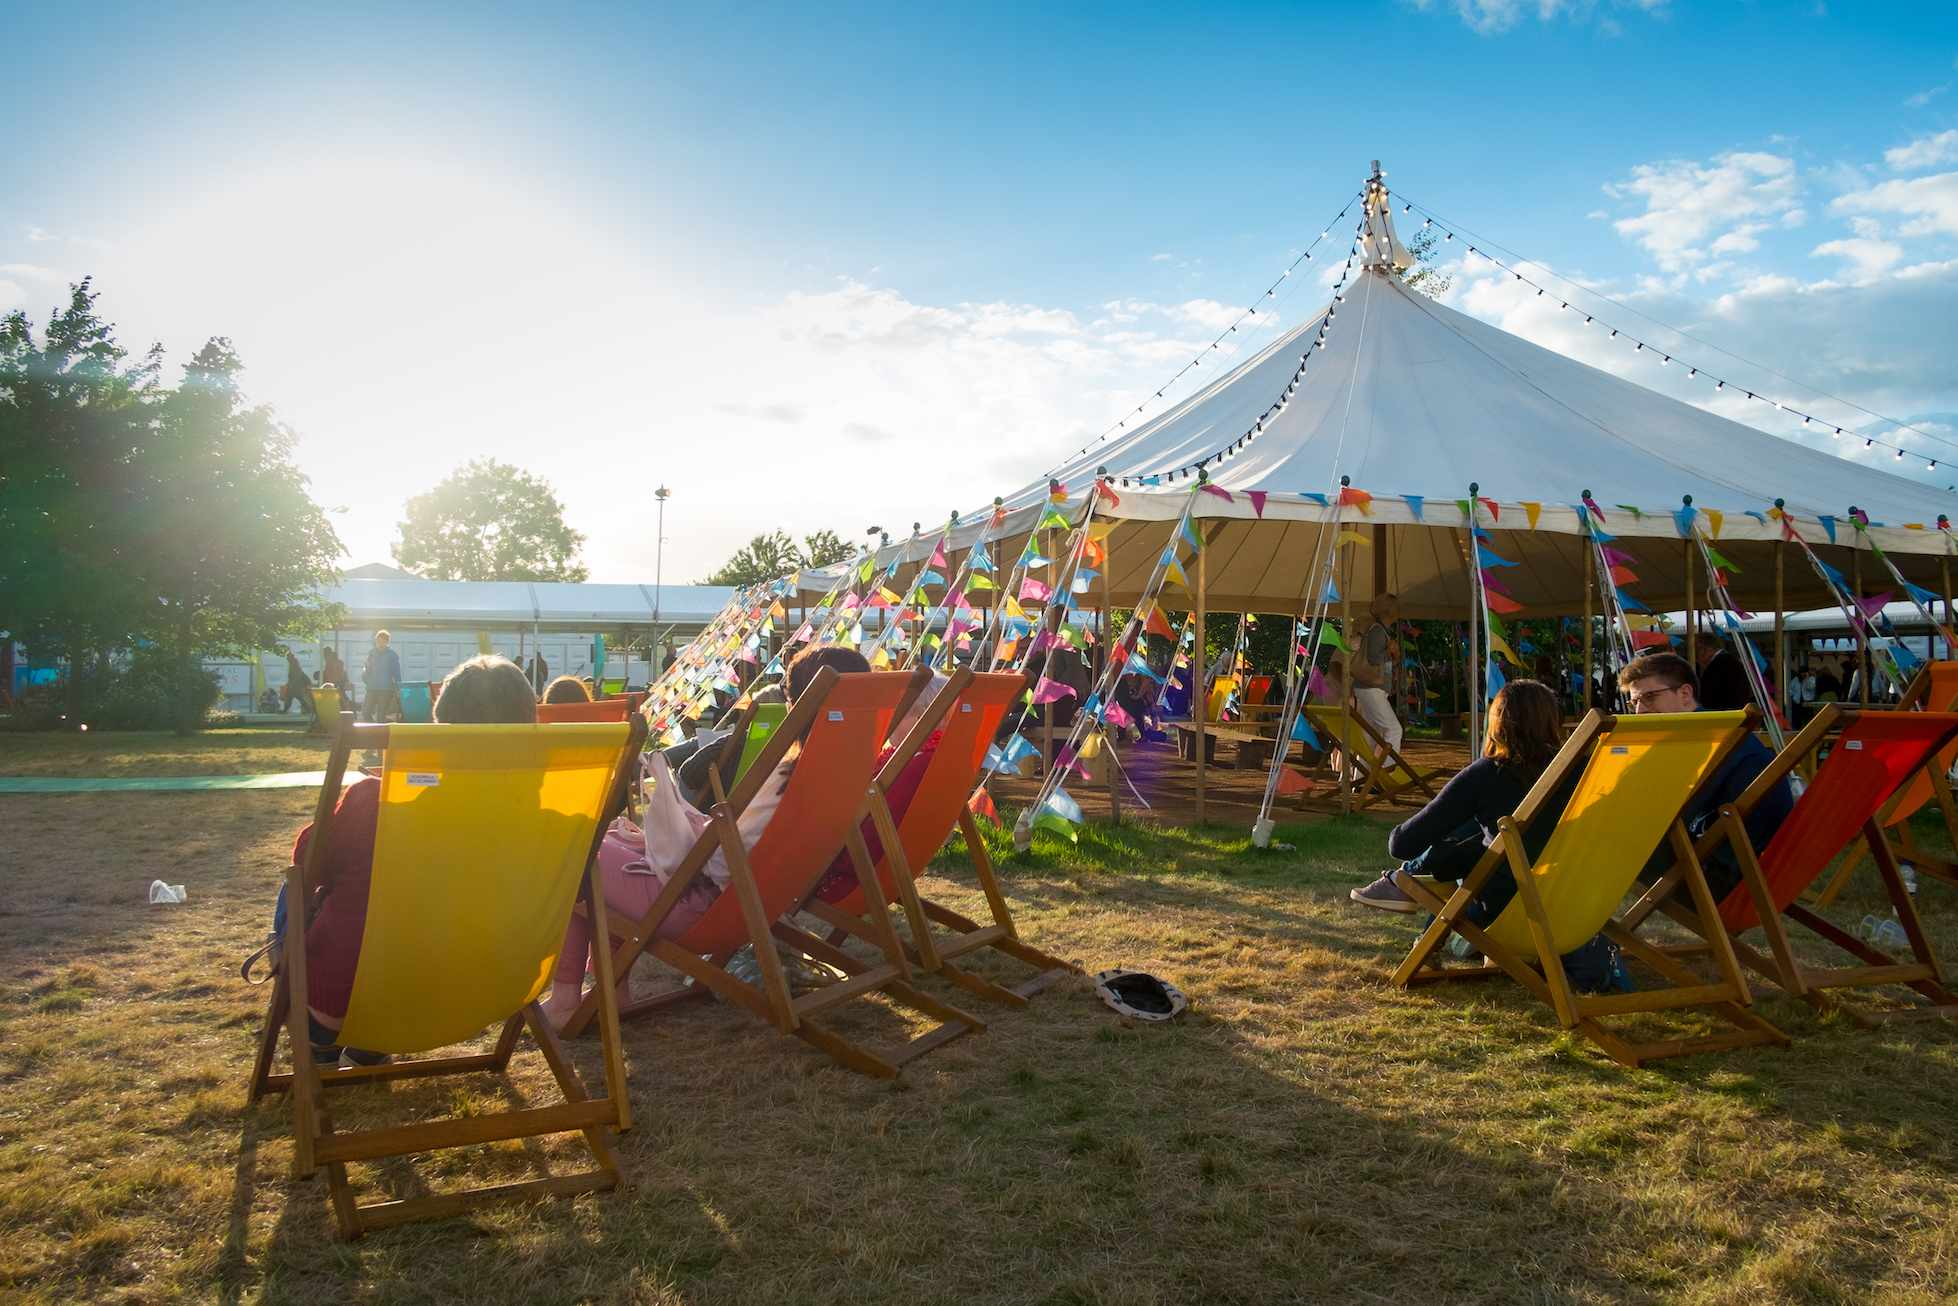 Hay Festival, deckchairs on the grass with large tent in the background